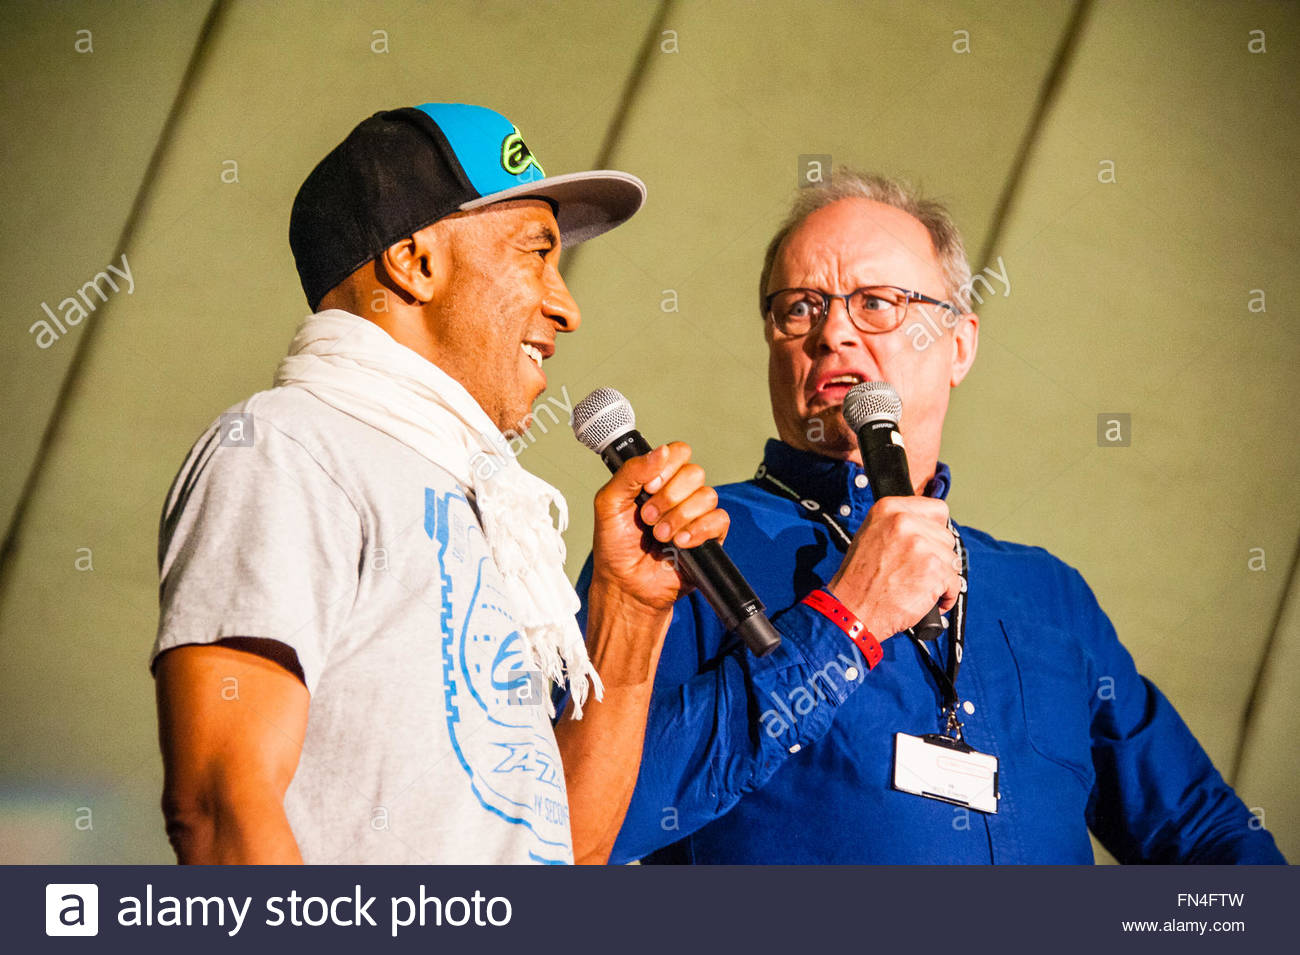 Liverpool, England UK, Sunday 13th March 2016. Robert Llewellyn & Danny John-Jules co-stars in Red Dwarf talk Red Stock Photo